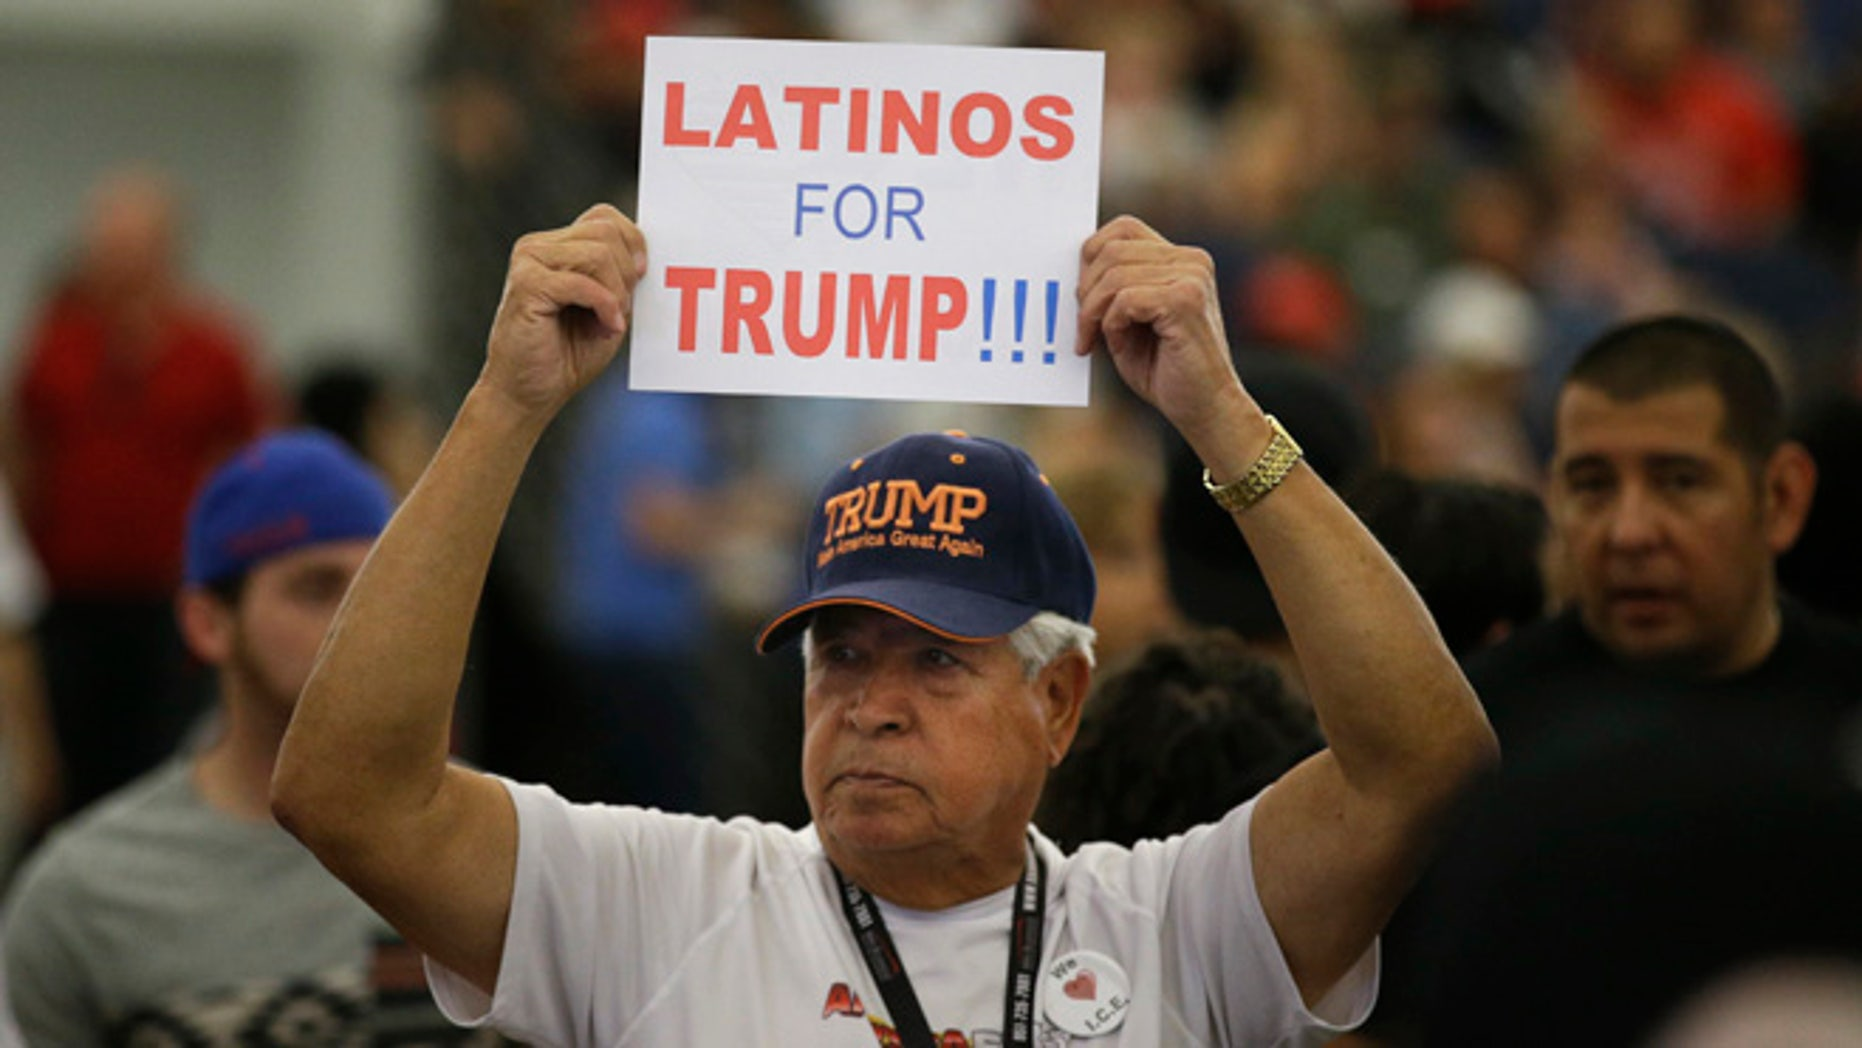 A Trump rally at the Anaheim Convention Center, Wednesday, May 25, 2016, in Anaheim, Calif.